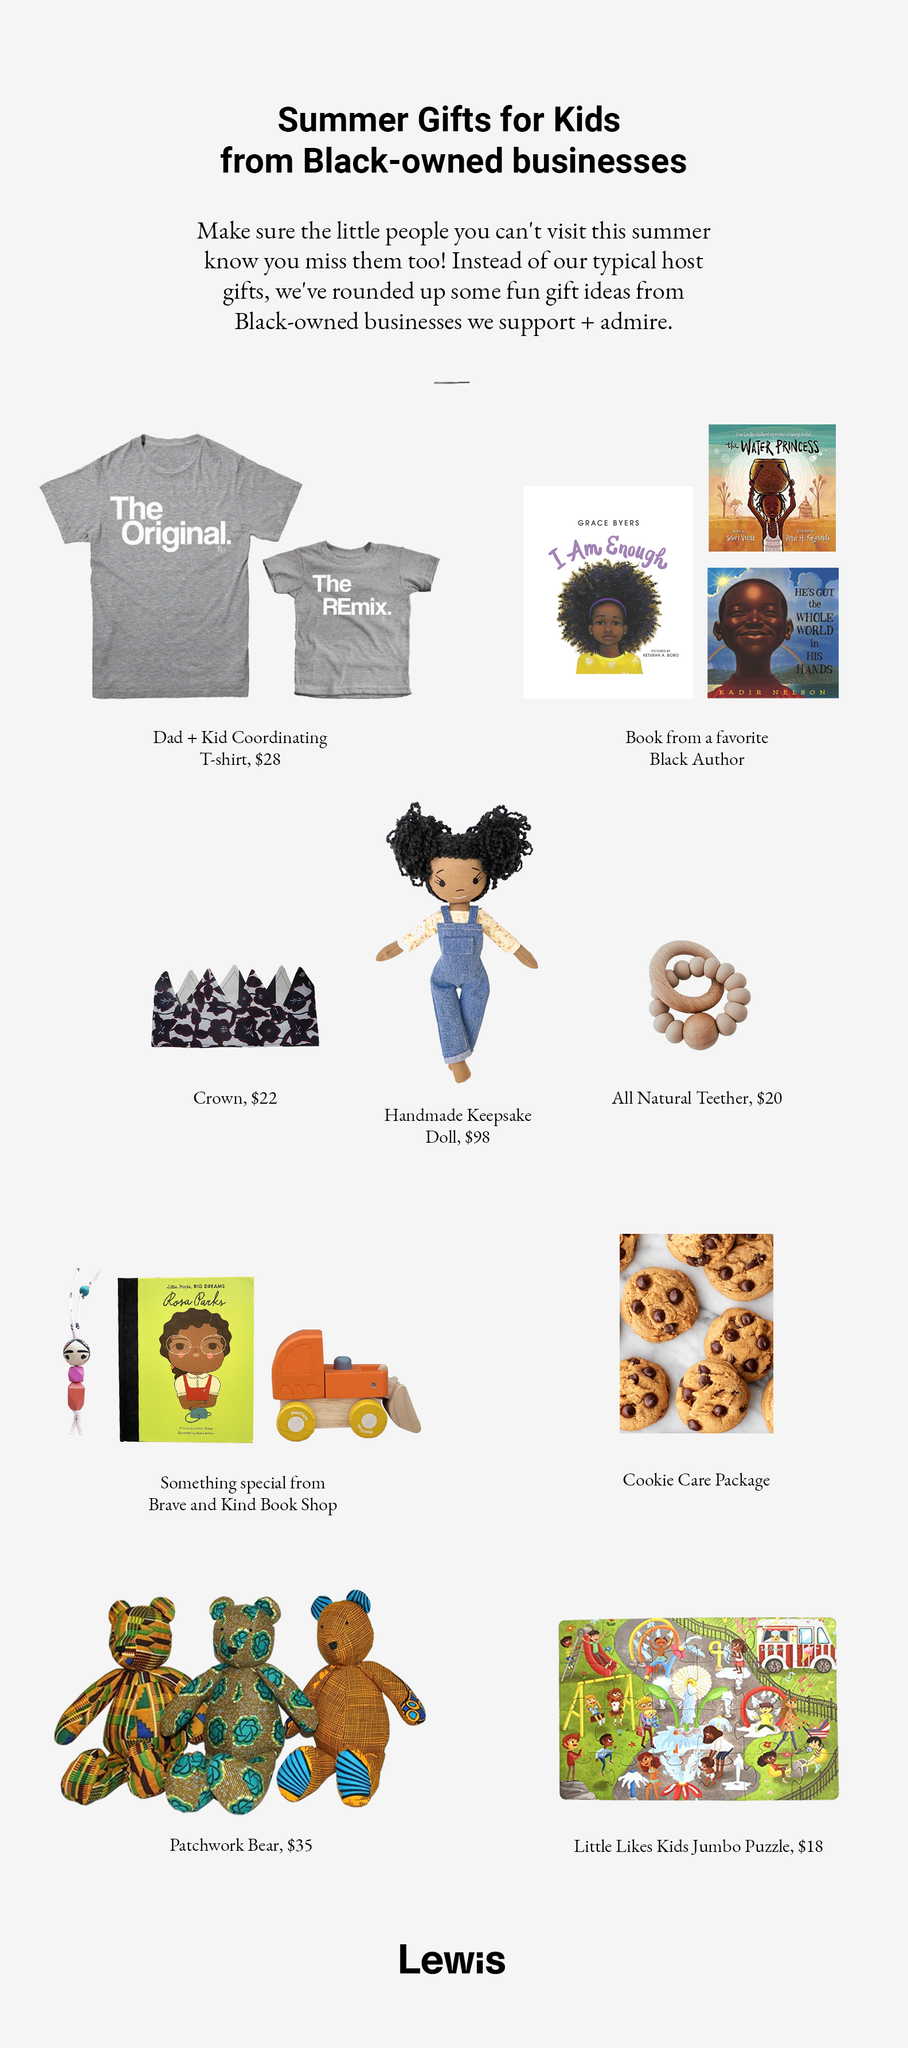 Roundup of children's toys and gifts from Black-owned businesses and artisans.